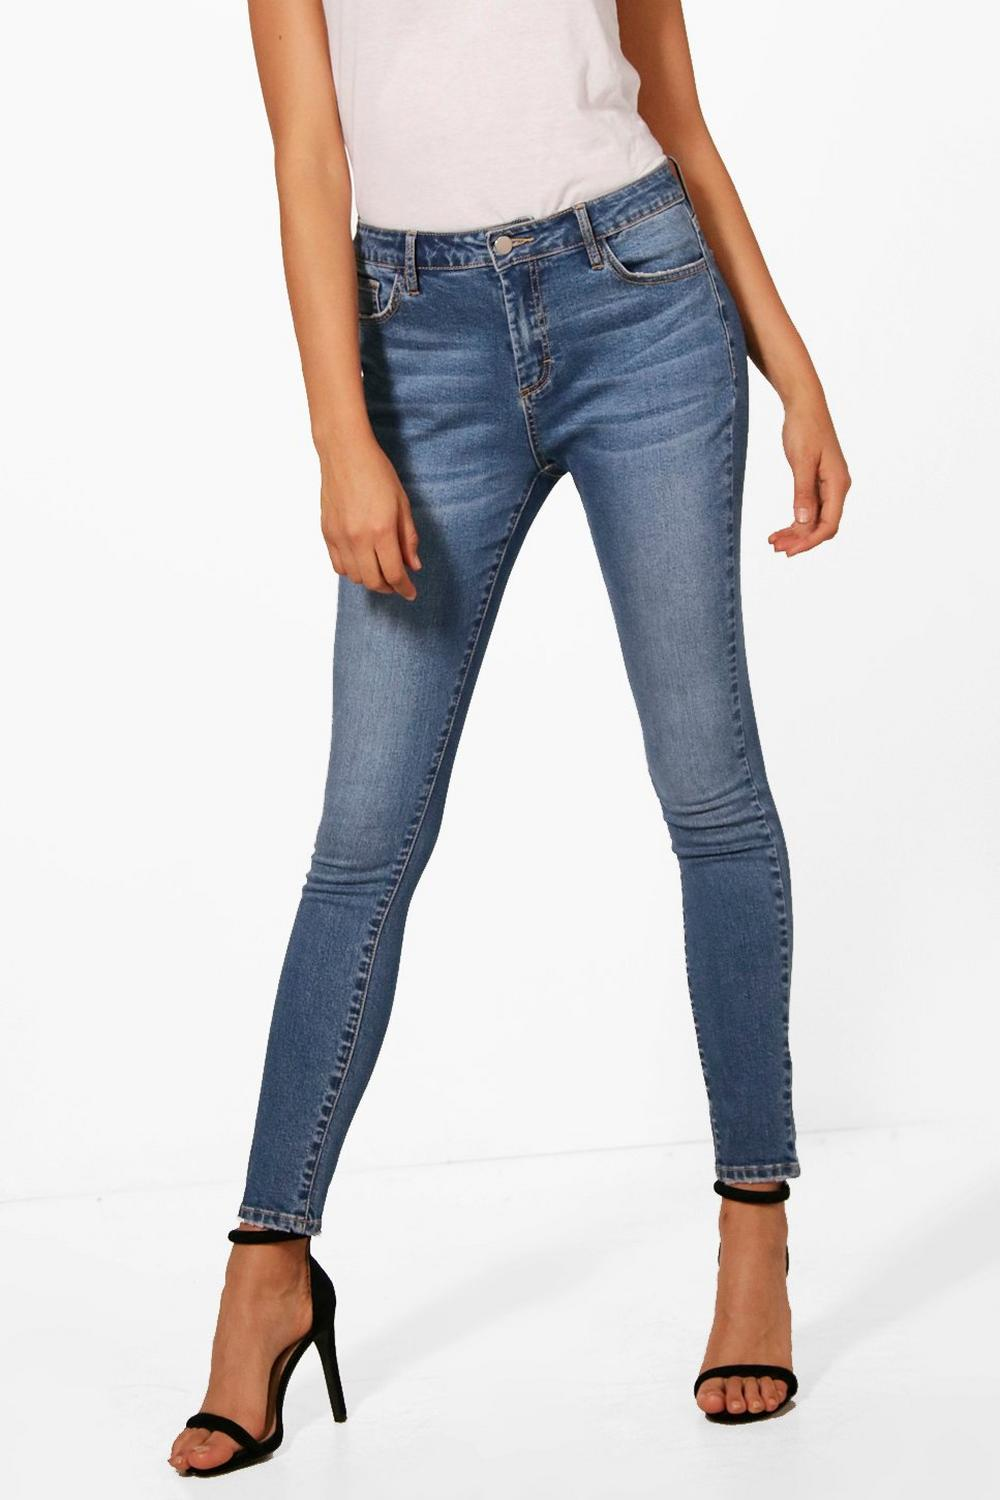 mid Mid blue Rise Skinny Jeans qwOHZF